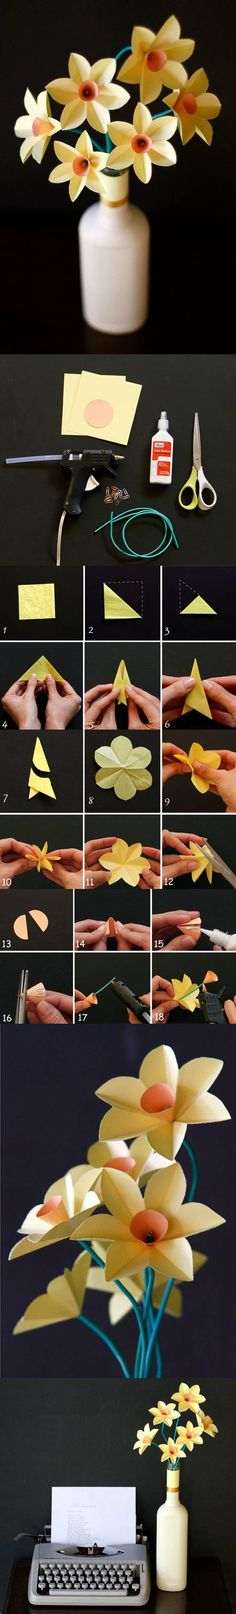 DIY Easy Paper Daffodils | iCreativeIdeas.com LIKE Us on Facebook ==> https://www.facebook.com/icreativeideas